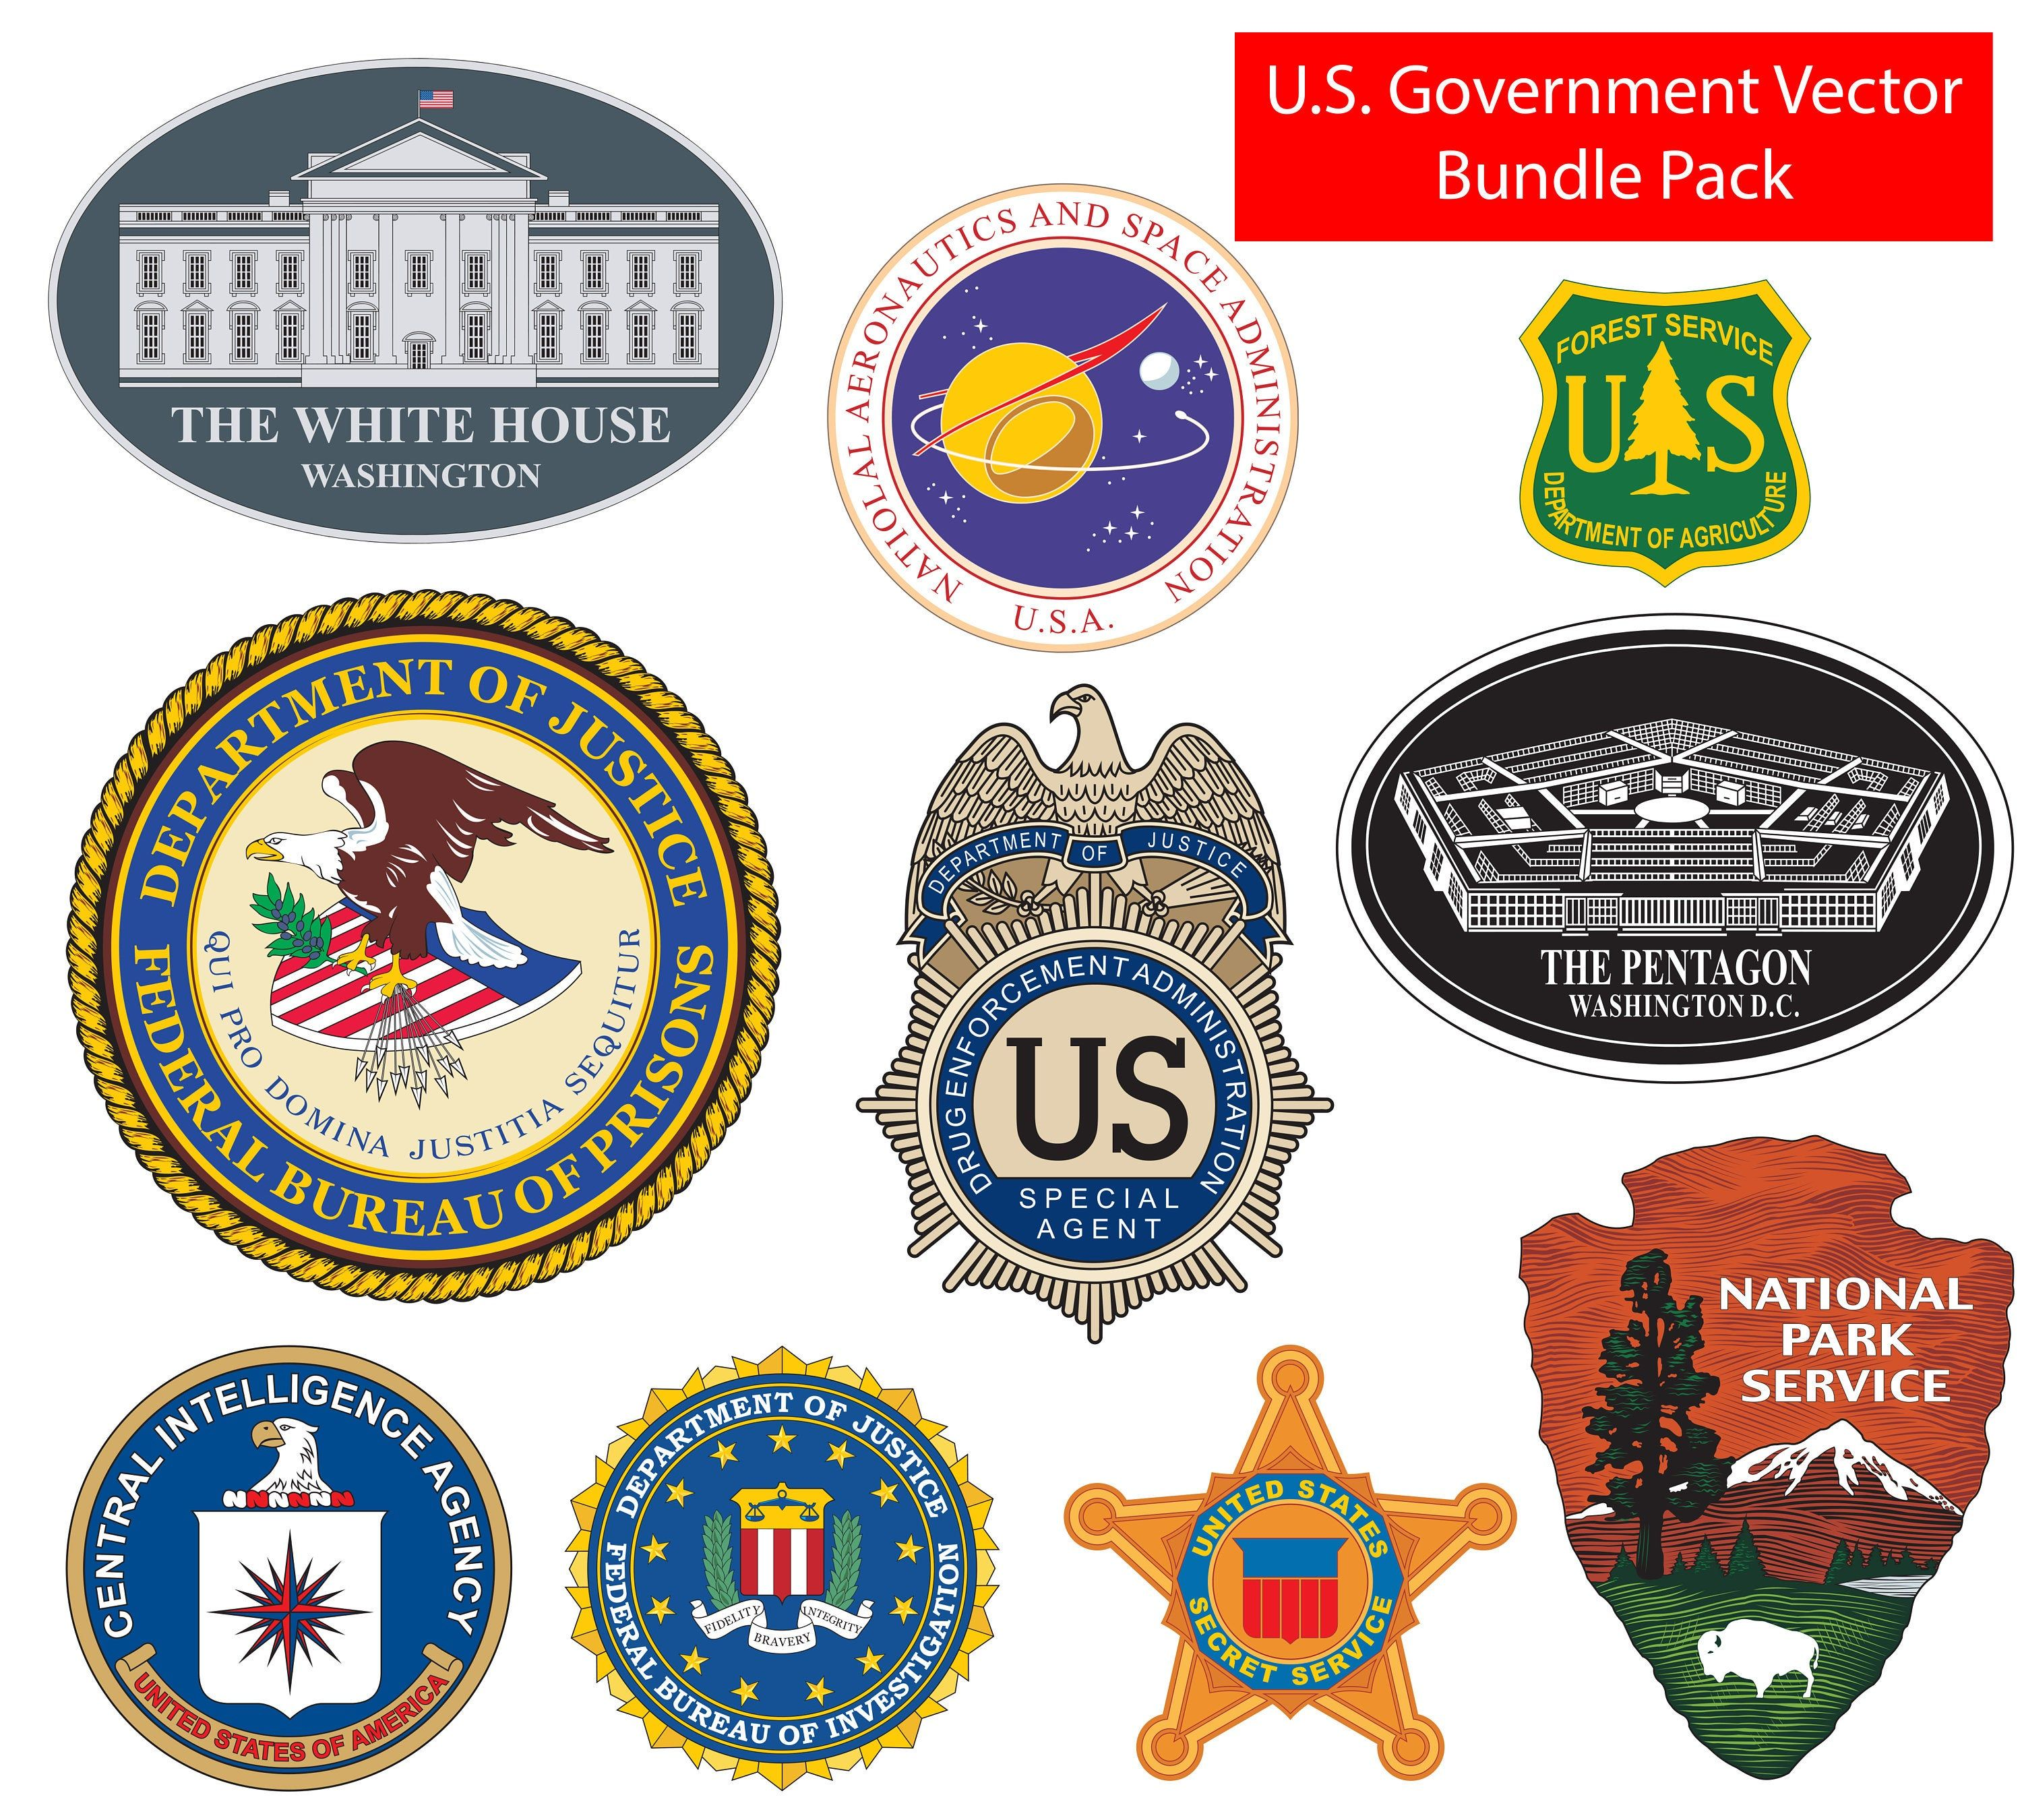 Over 80 U S Government Bureaus Agencies And Departments